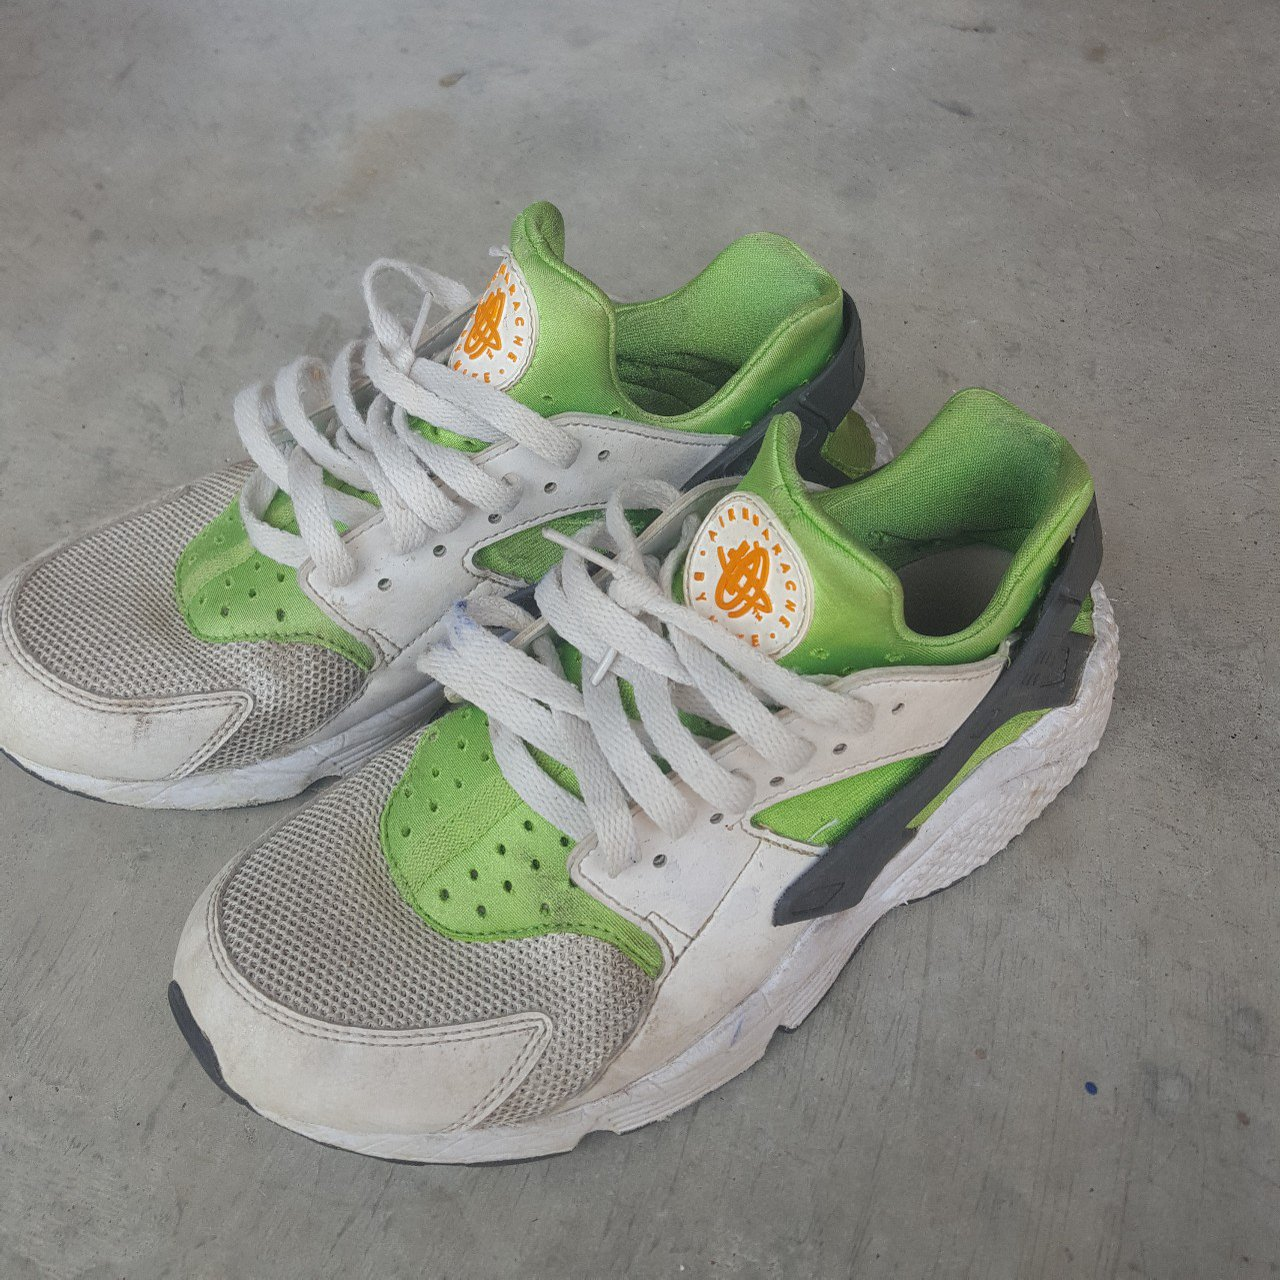 hot sale online 3fb47 cf407 oluwavaness01. last year. Mesquite, Texas, United States. NIKE AIR HUARACHE  (ACTION GREENVIVID ...